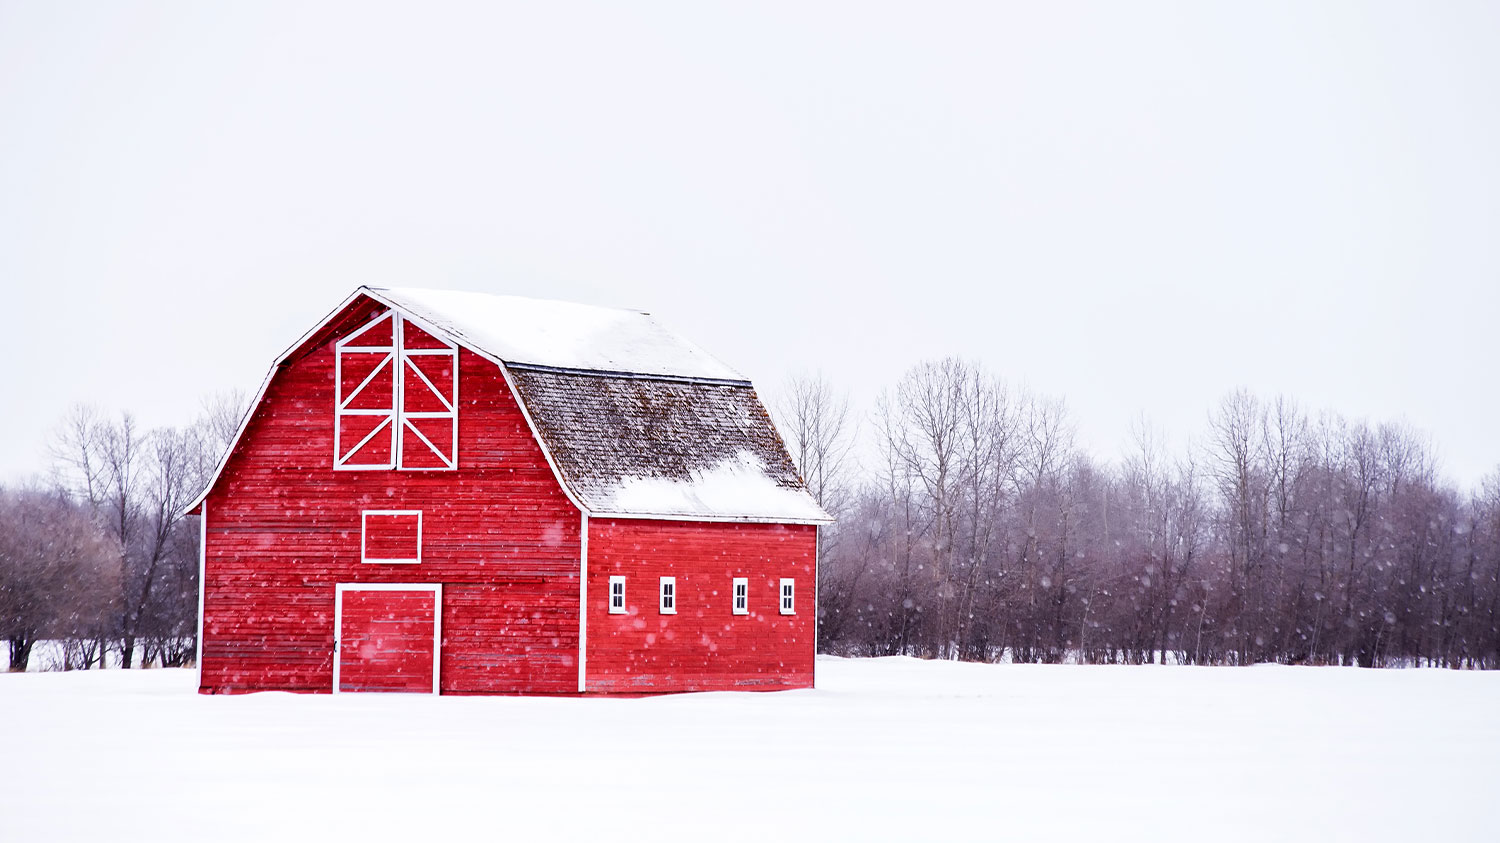 Red barn in the winter